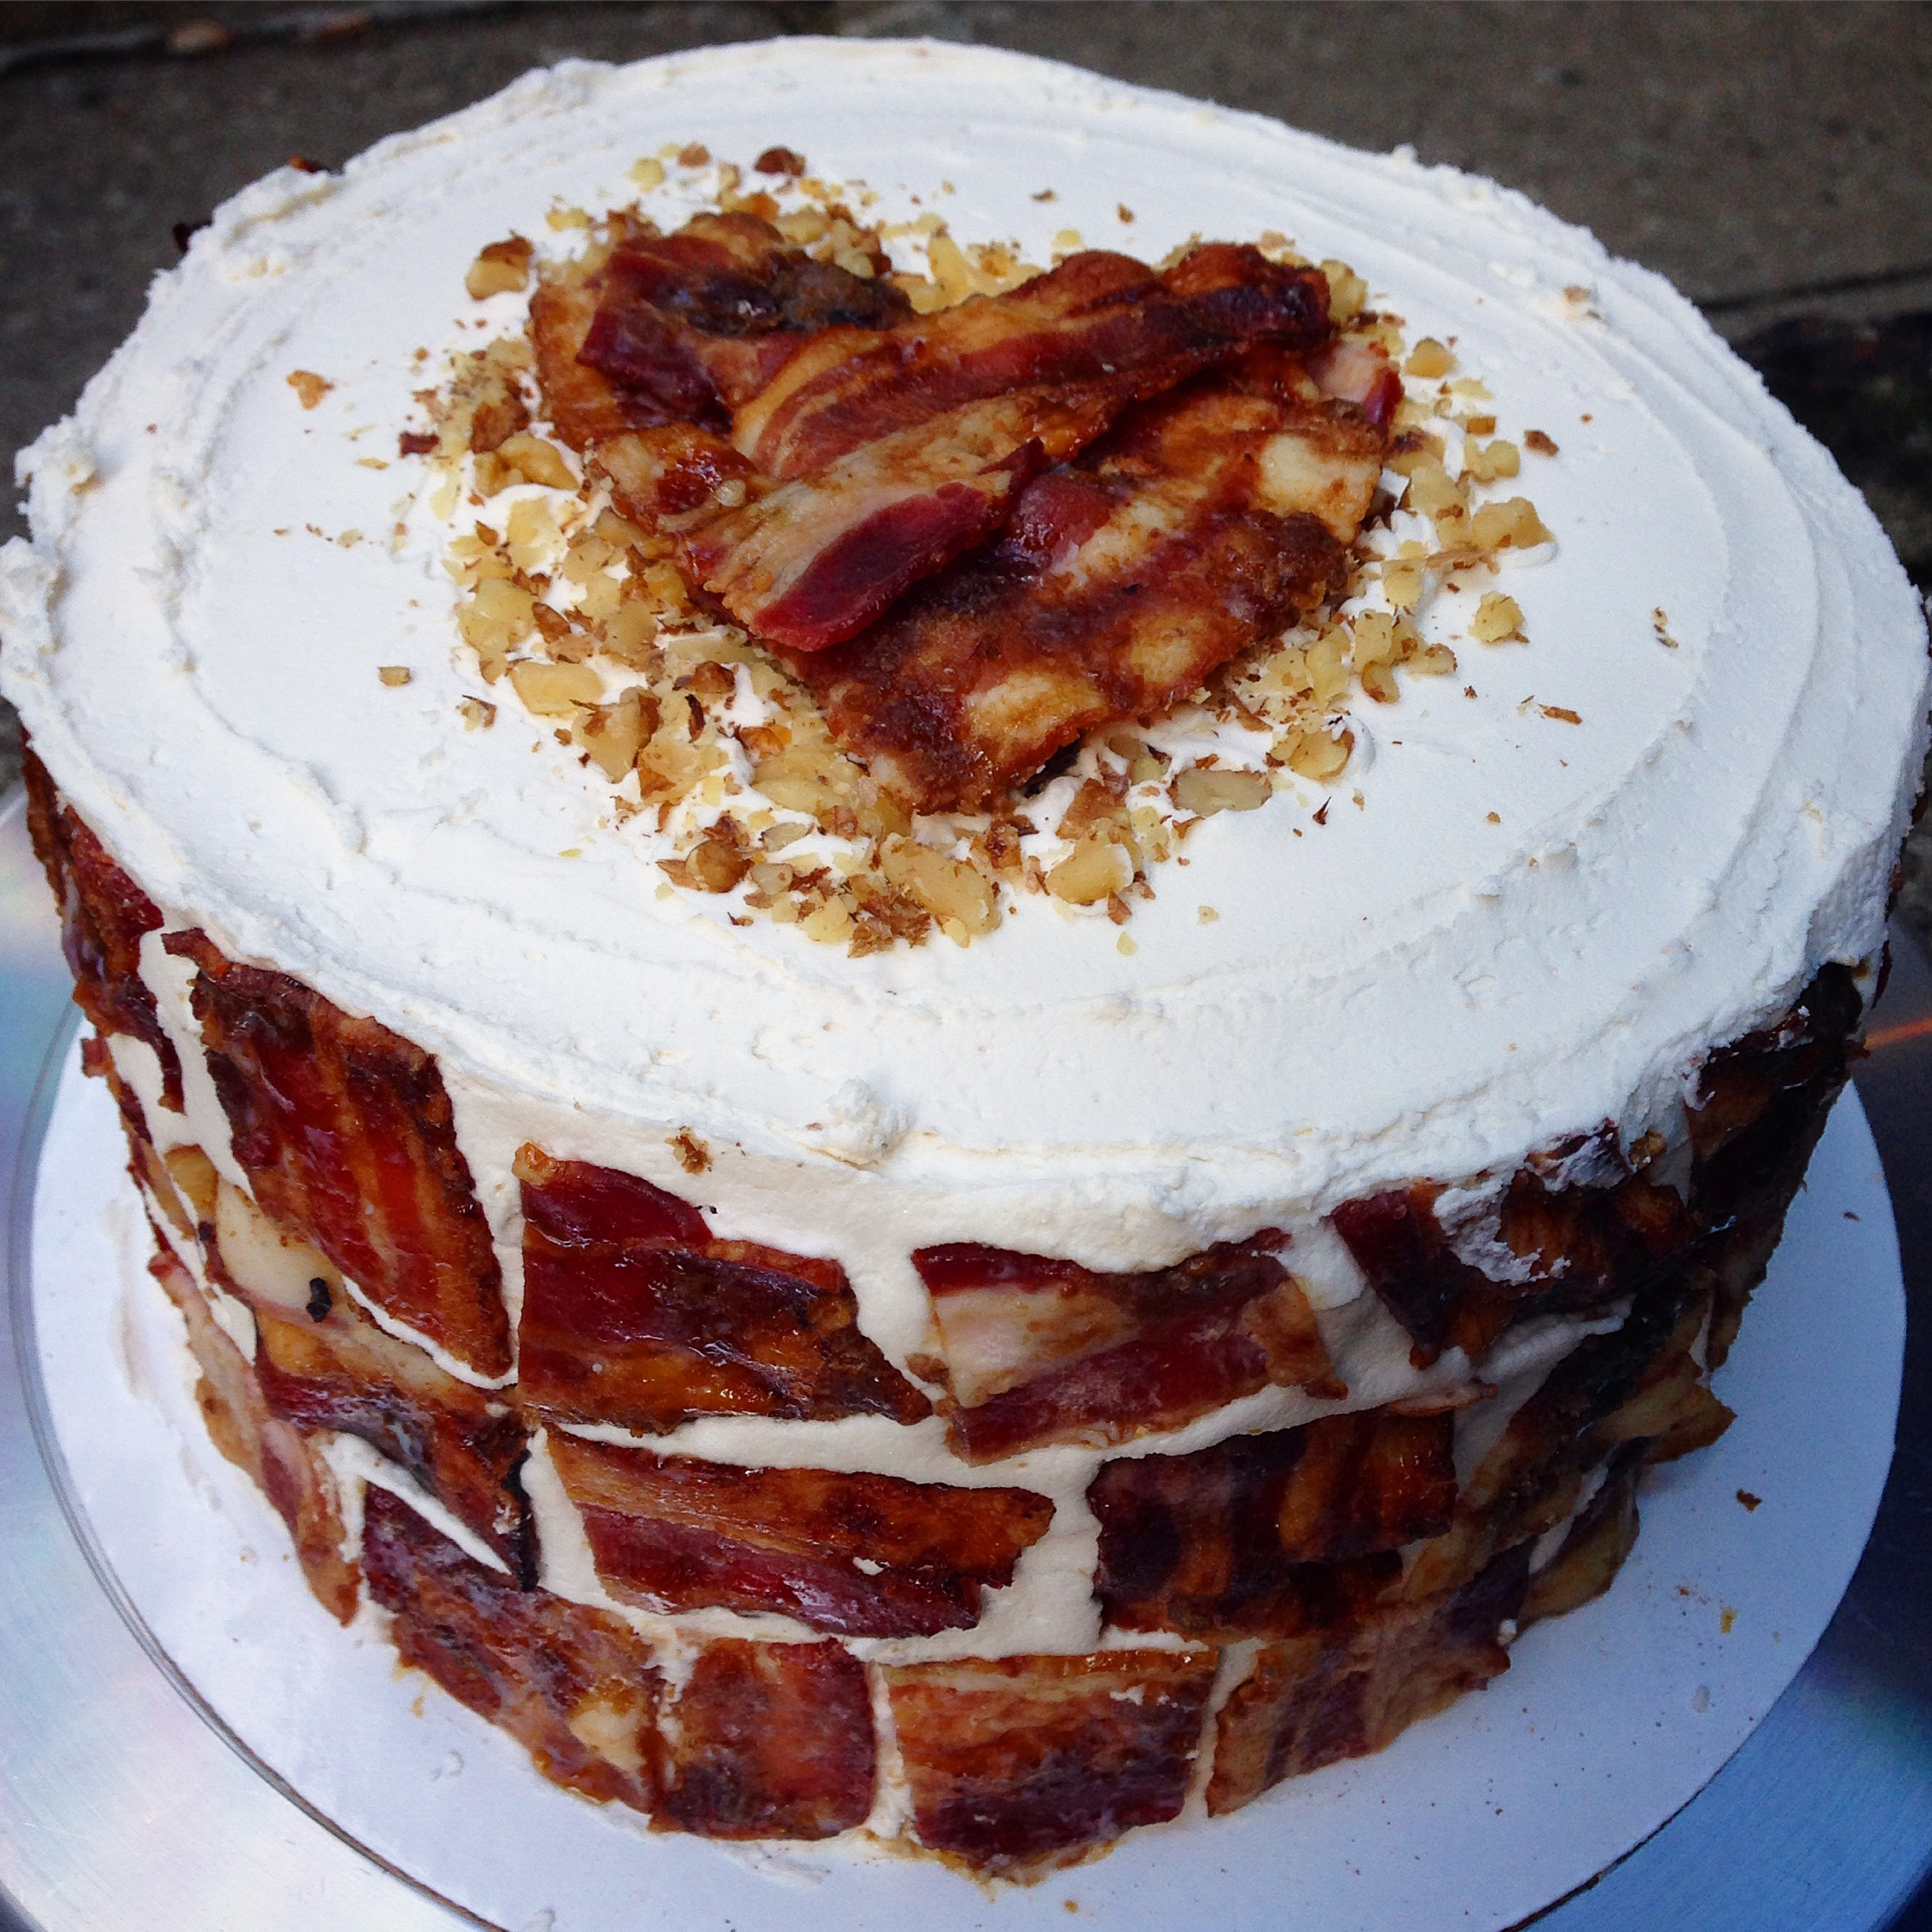 The Maple Bacon Breakfast Birthday Cake | Chelsweets